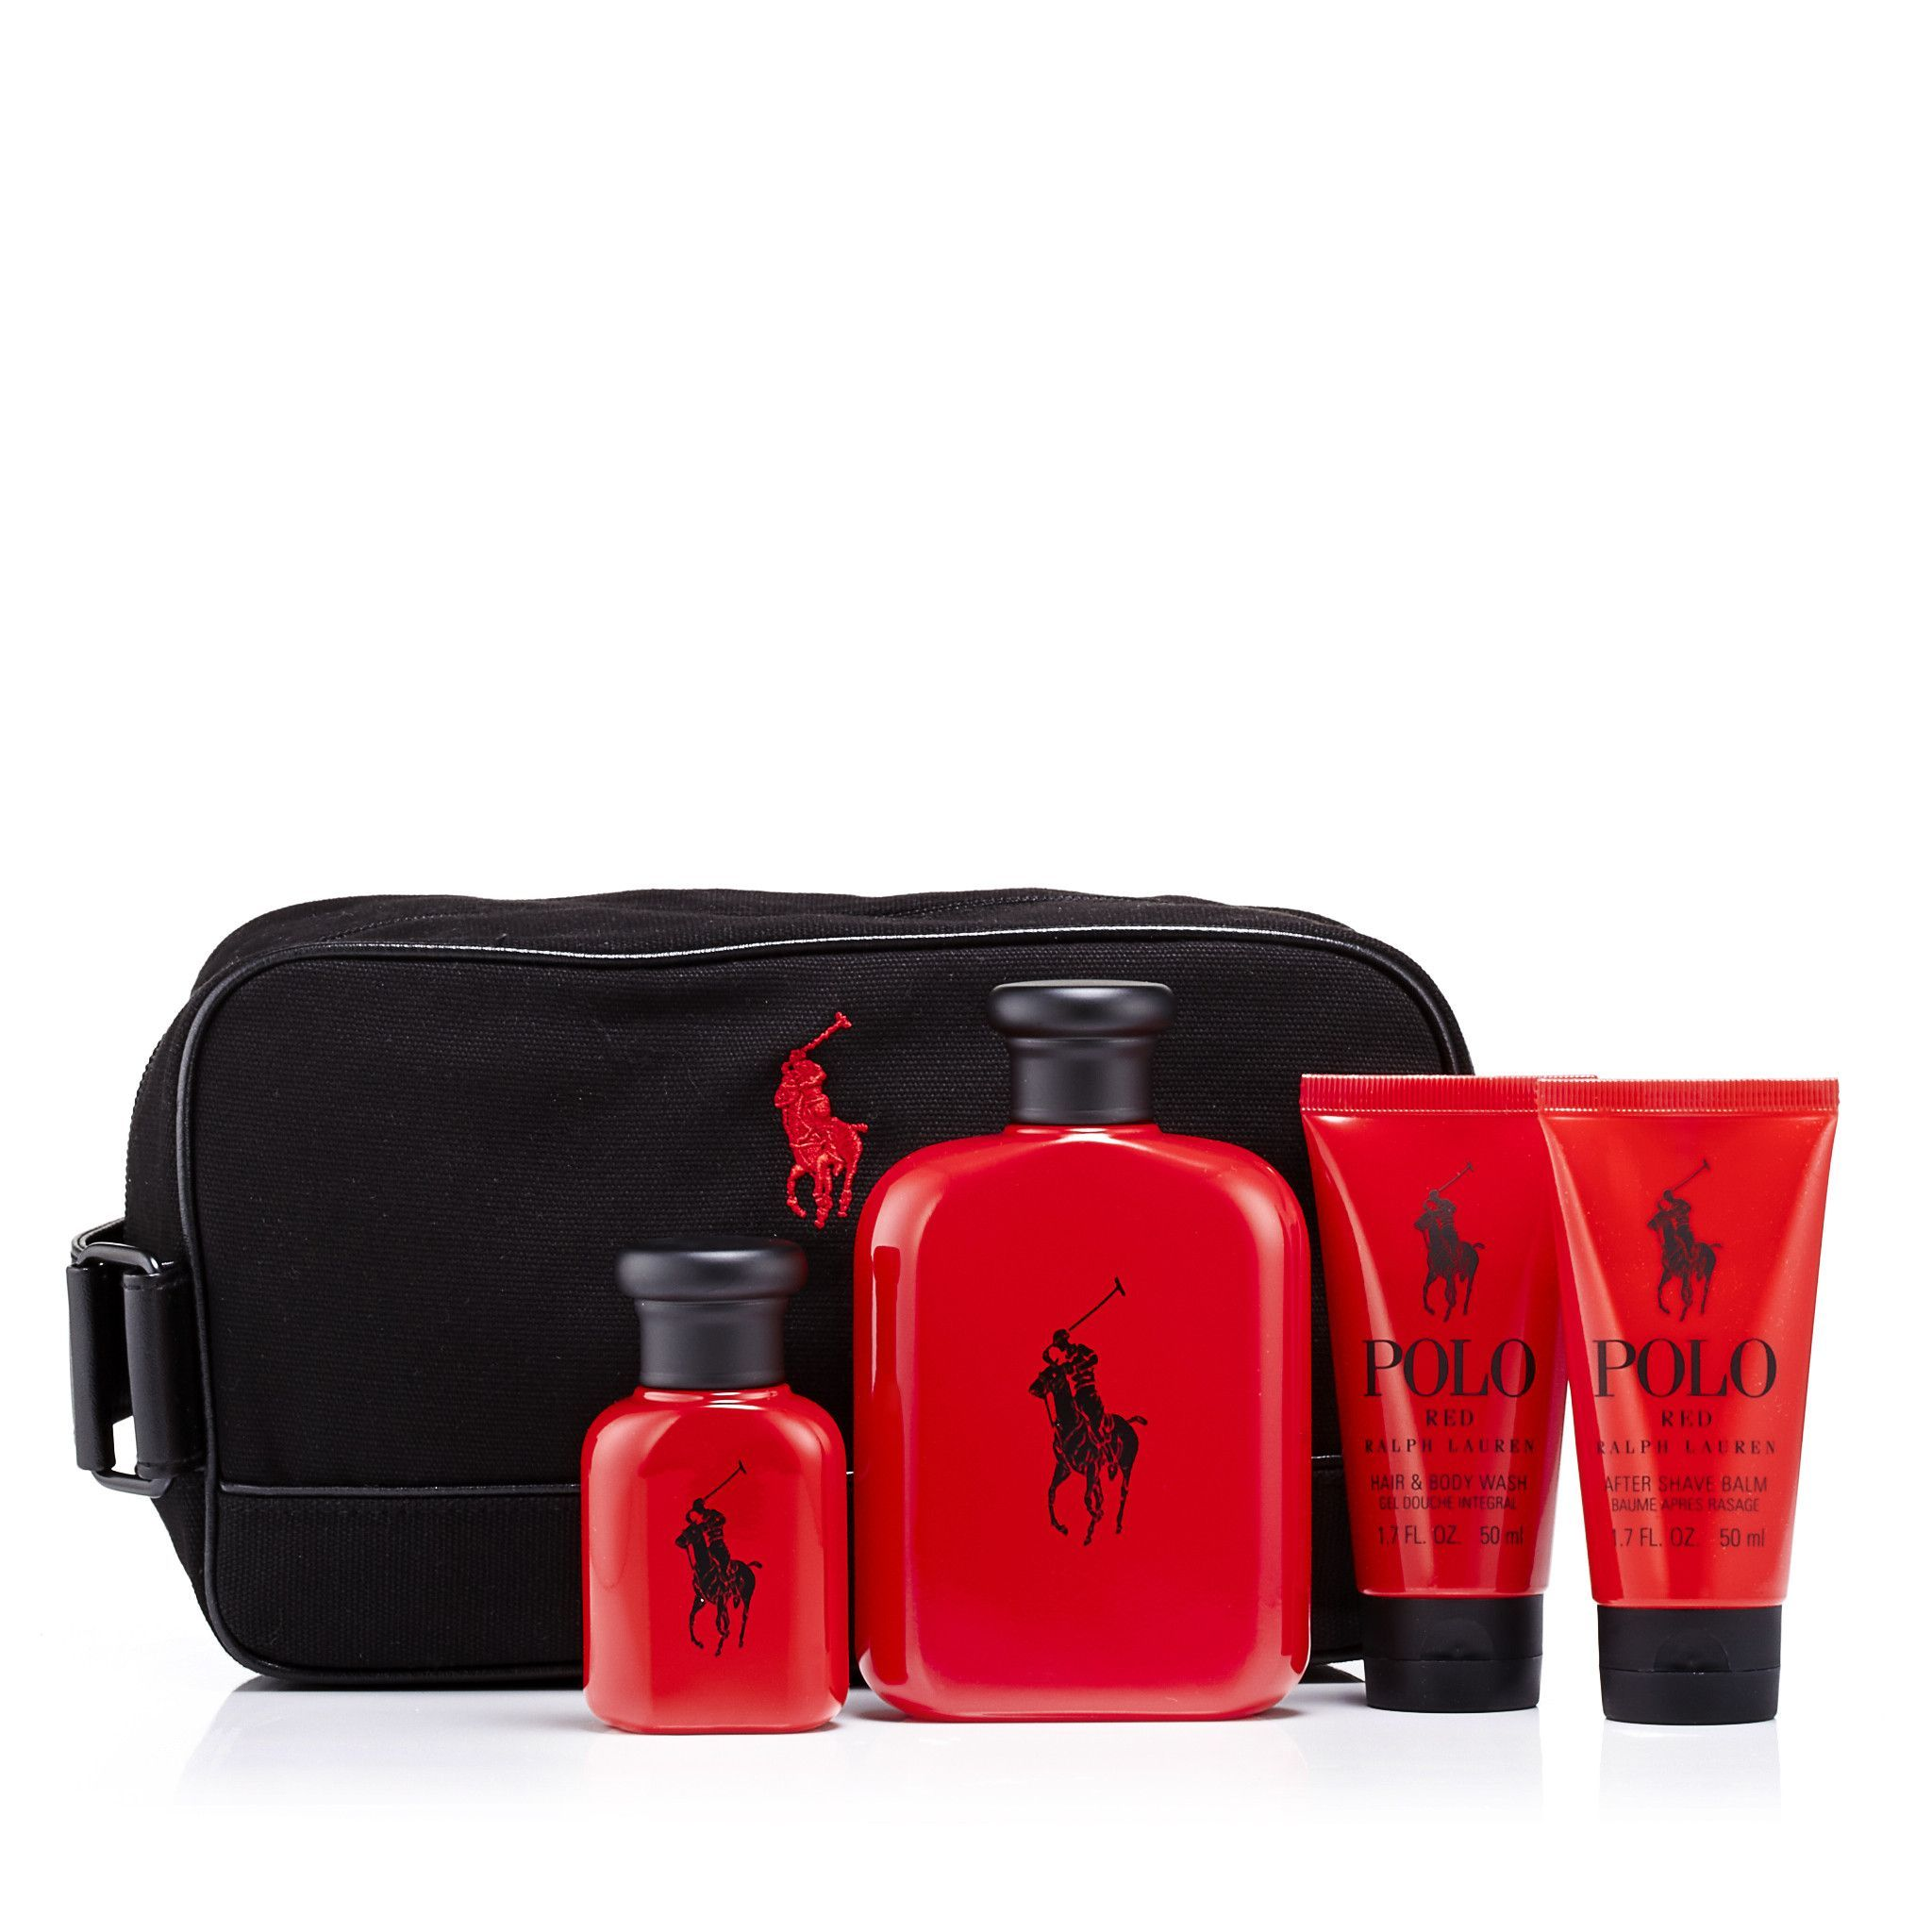 Polo Red Gift Set and Dopp Kit Bag for Men by Ralph Lauren  3f10de0ab6d76